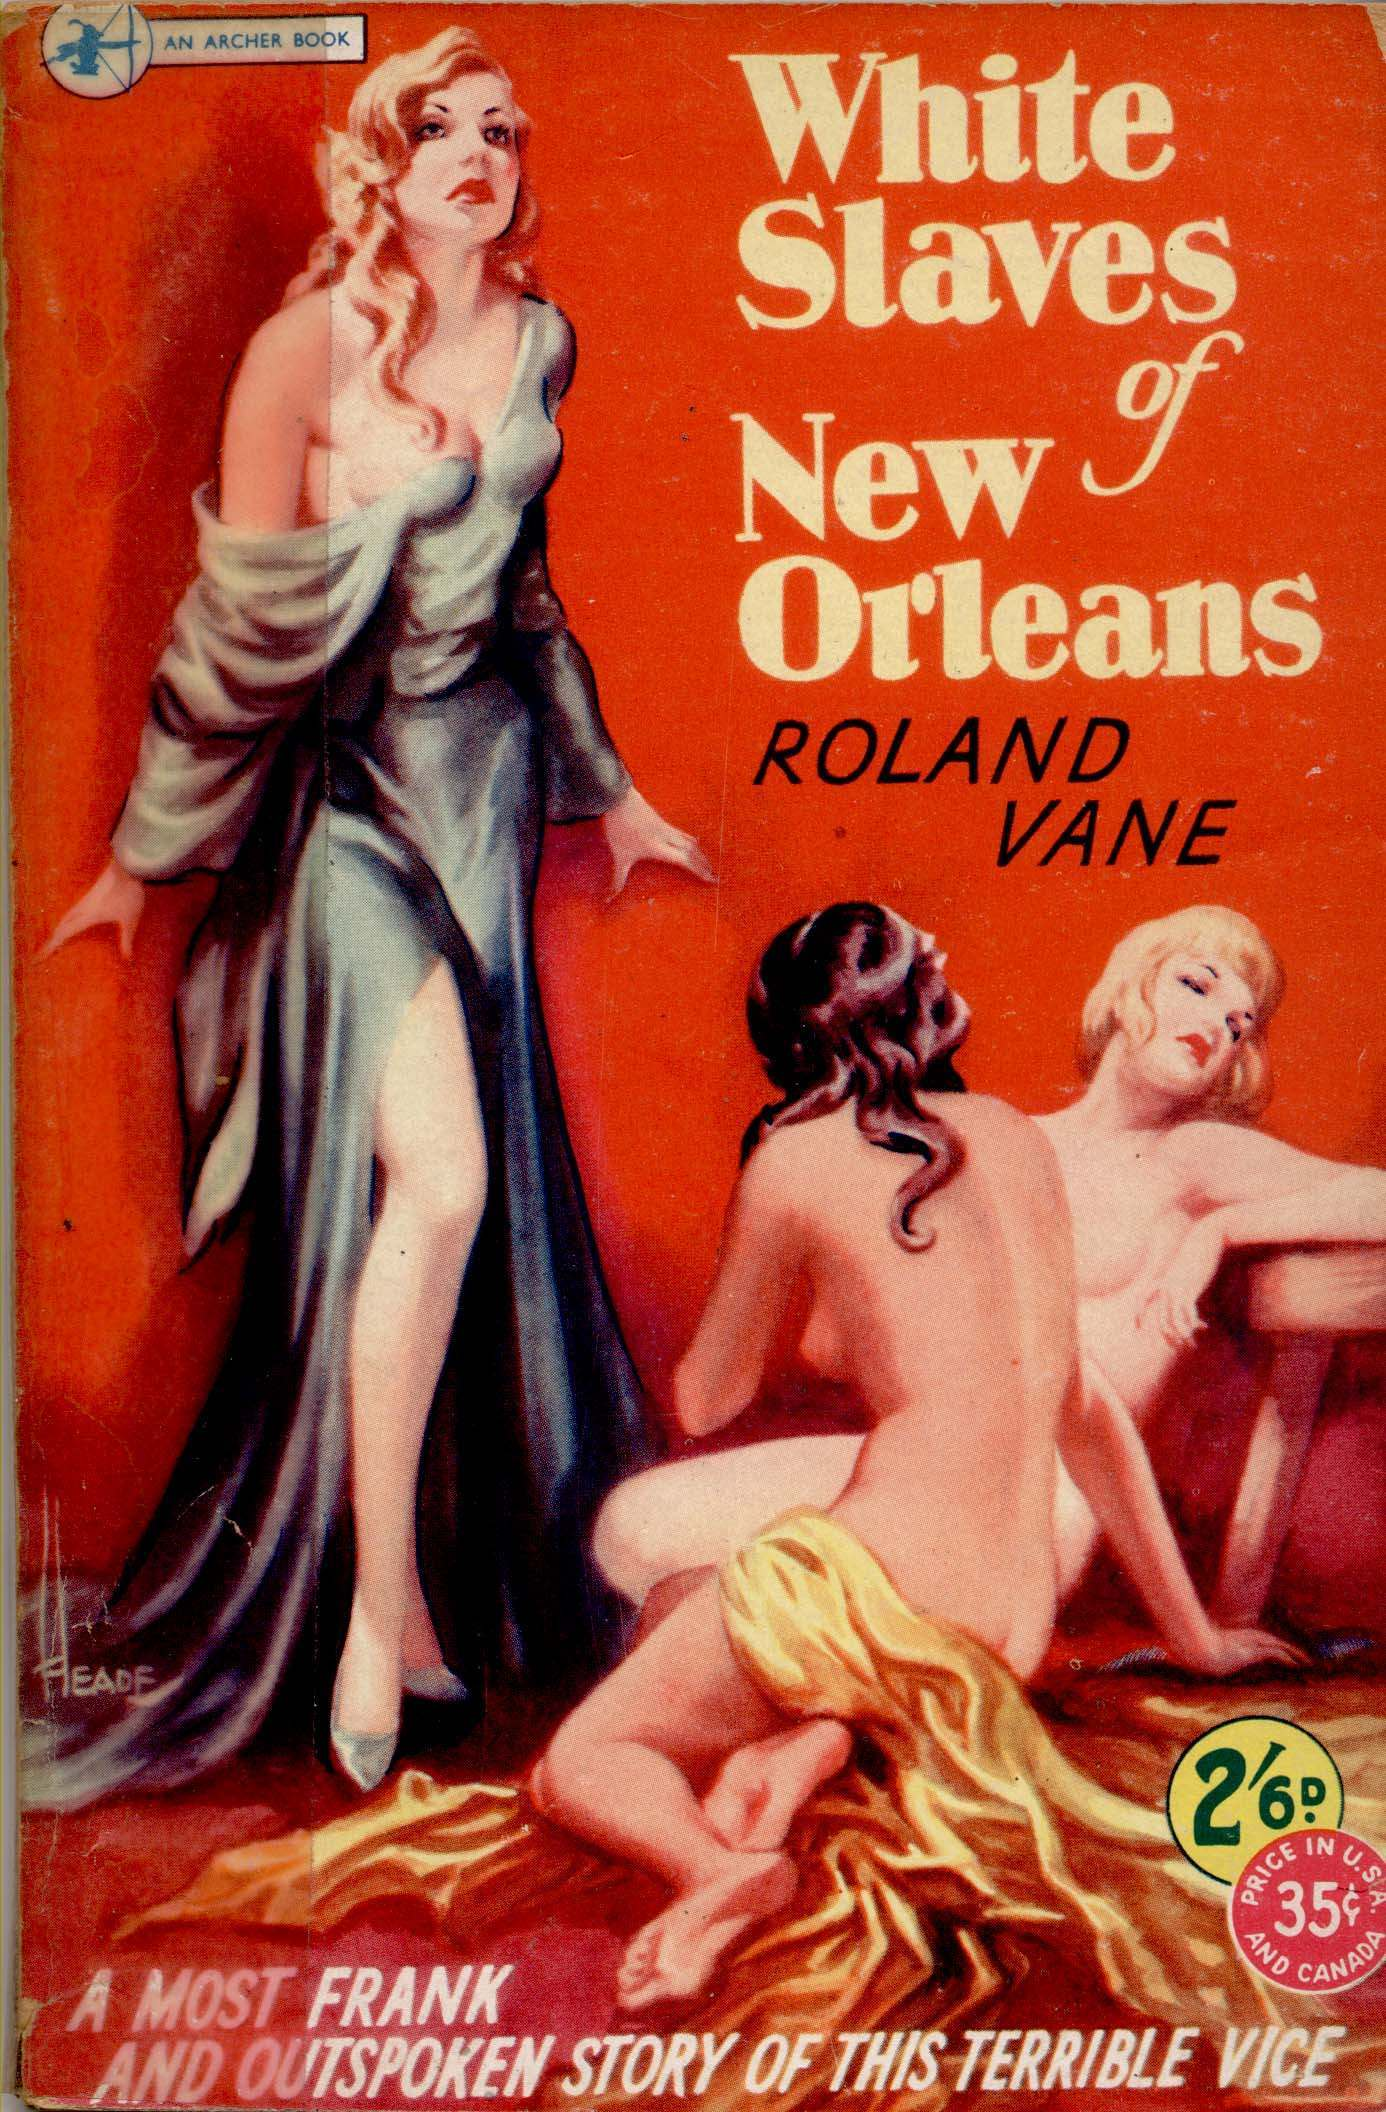 'White Slaves of New Orleans' by Roland Vane, published in 1949.